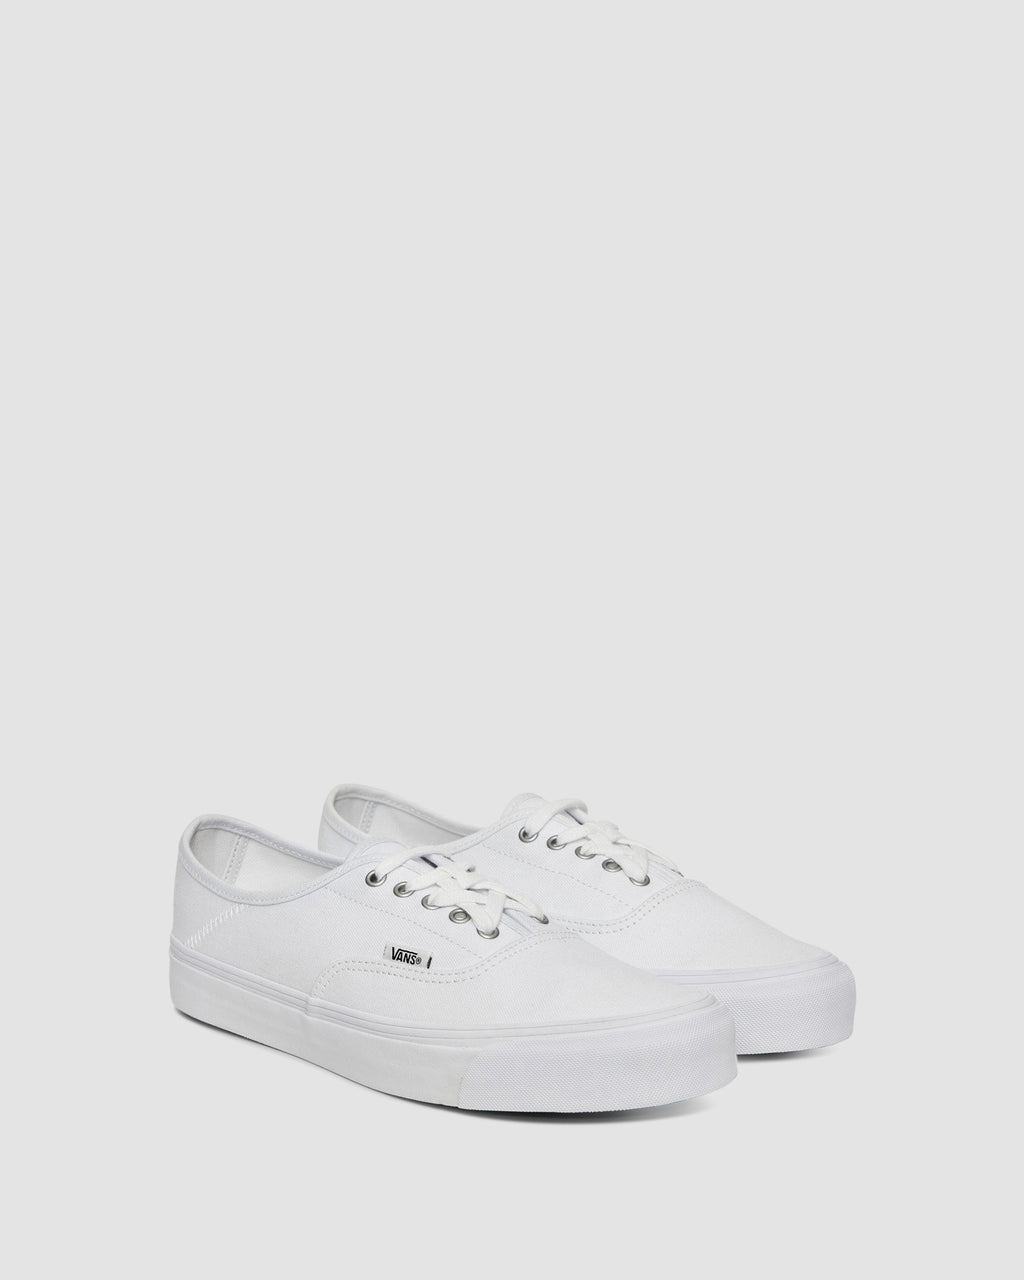 ce6fc8d460af VANS OG STYLE 43 AUTHENTIC FOLD DOWN TRUE WHITE – alyx